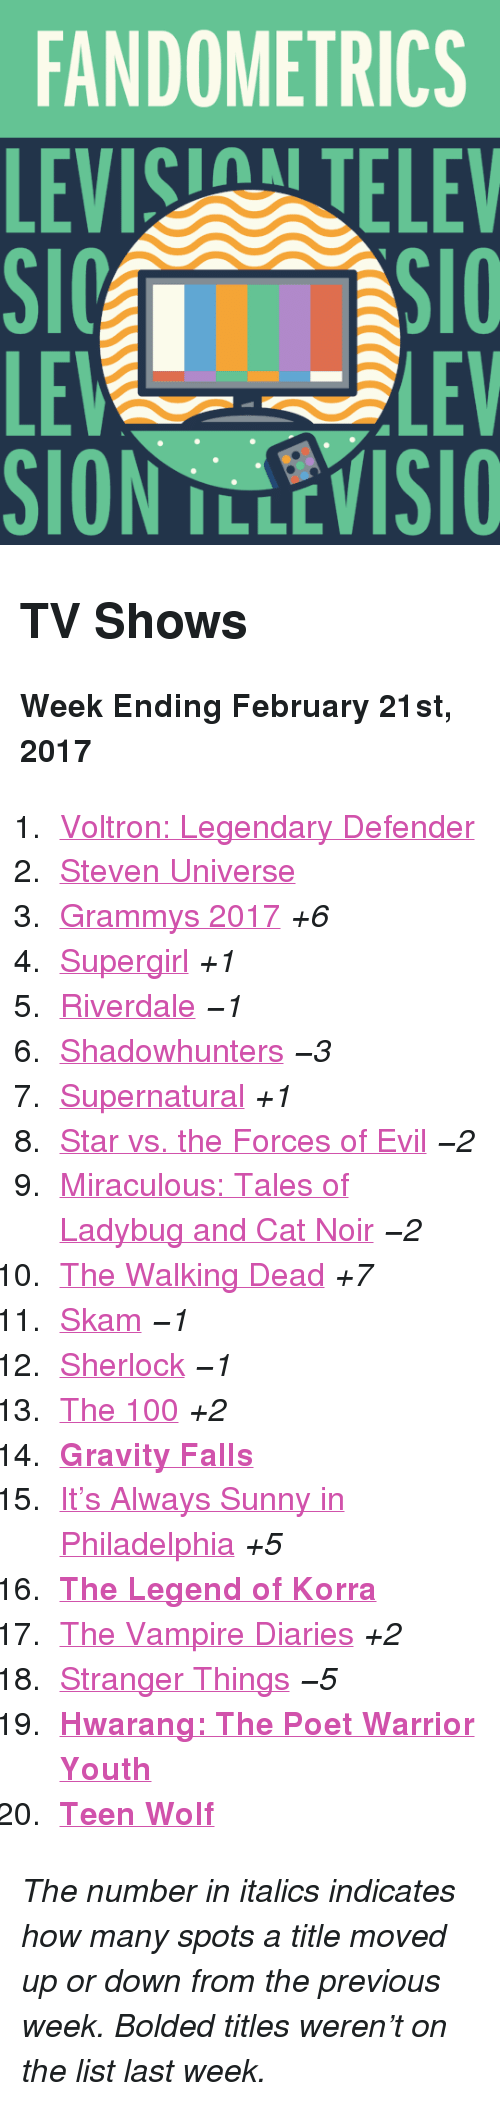 """riverdale: FANDOMETRICS  LEVIS TELEV  LE  SION TLLEVISIO  LEV <h2>TV Shows</h2><p><b>Week Ending February 21st, 2017</b></p><ol><li><a href=""""http://www.tumblr.com/search/voltron"""">Voltron: Legendary Defender</a></li>  <li><a href=""""http://www.tumblr.com/search/steven%20universe"""">Steven Universe</a></li>  <li><a href=""""http://www.tumblr.com/search/grammys"""">Grammys 2017</a><i>+6</i></li>  <li><a href=""""http://www.tumblr.com/search/supergirl"""">Supergirl</a><i>+1</i></li>  <li><a href=""""http://www.tumblr.com/search/riverdale"""">Riverdale</a><i><i>−1</i></i></li>  <li><a href=""""http://www.tumblr.com/search/shadowhunters"""">Shadowhunters</a><i><i>−3</i></i></li>  <li><a href=""""http://www.tumblr.com/search/supernatural"""">Supernatural</a><i>+1</i></li>  <li><a href=""""http://www.tumblr.com/search/star%20vs%20the%20forces%20of%20evil"""">Star vs. the Forces of Evil</a><i><i>−2</i></i></li>  <li><a href=""""http://www.tumblr.com/search/miraculous%20ladybug"""">Miraculous: Tales of Ladybug and Cat Noir</a><i><i>−2</i></i></li>  <li><a href=""""http://www.tumblr.com/search/the%20walking%20dead"""">The Walking Dead</a><i>+7</i></li>  <li><a href=""""http://www.tumblr.com/search/skam"""">Skam</a><i><i>−1</i></i></li>  <li><a href=""""http://www.tumblr.com/search/sherlock"""">Sherlock</a><i><i>−1</i></i></li>  <li><a href=""""http://www.tumblr.com/search/the%20100"""">The 100</a><i>+2</i></li>  <li><a href=""""http://www.tumblr.com/search/gravity%20falls""""><b>Gravity Falls</b></a></li>  <li><a href=""""http://www.tumblr.com/search/it's%20always%20sunny%20in%20philadelphia"""">It&rsquo;s Always Sunny in Philadelphia</a><i>+5</i></li>  <li><a href=""""http://www.tumblr.com/search/legend%20of%20korra""""><b>The Legend of Korra</b></a></li>  <li><a href=""""http://www.tumblr.com/search/the%20vampire%20diaries"""">The Vampire Diaries</a><i>+2</i></li>  <li><a href=""""http://www.tumblr.com/search/stranger%20things"""">Stranger Things</a><i><i>−5</i></i></li>  <li><a href=""""http://www.tumblr.com/search/hwarang""""><b>Hwarang: The Poet Warrior Youth</b></a></li>  <l"""